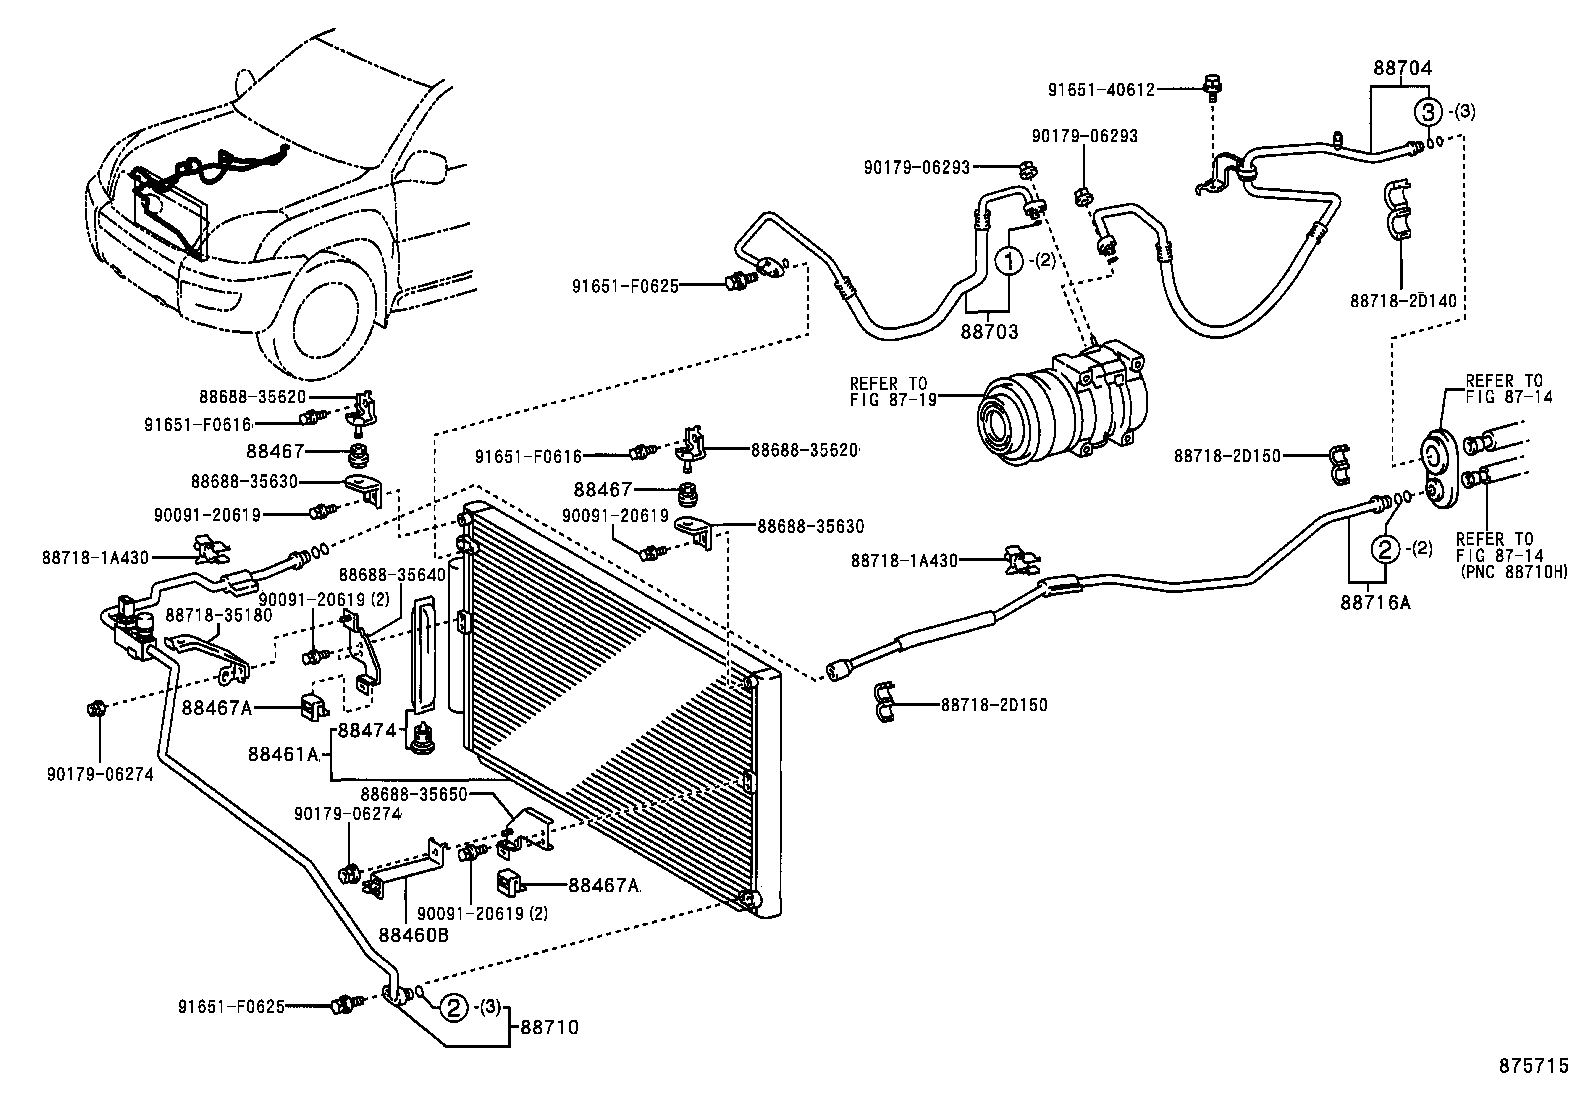 Wiring Diagram Toyota Highlander